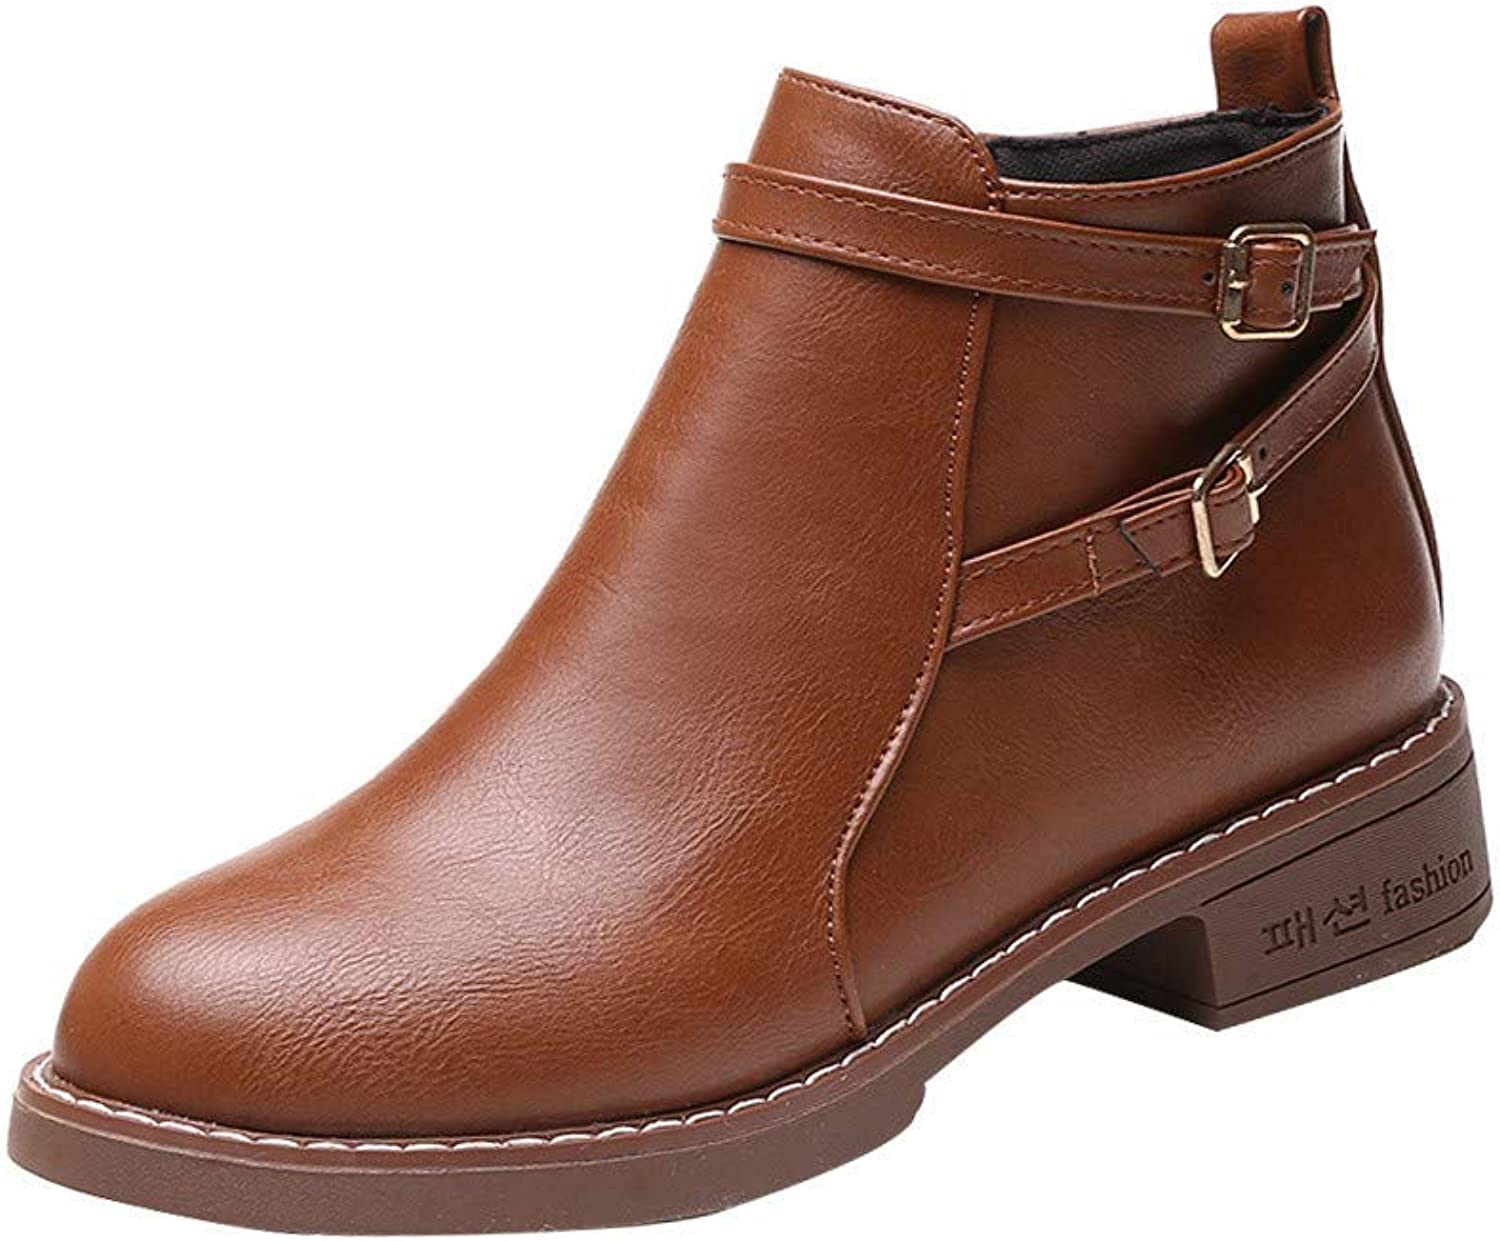 So8ooa Lady Boots Women Fashion Solid Leather Medium High Closure Thick Martin Boots Round Toe Brown shoes Black Cosy Wild Casual Quality Super Elegant Leisure for Womens